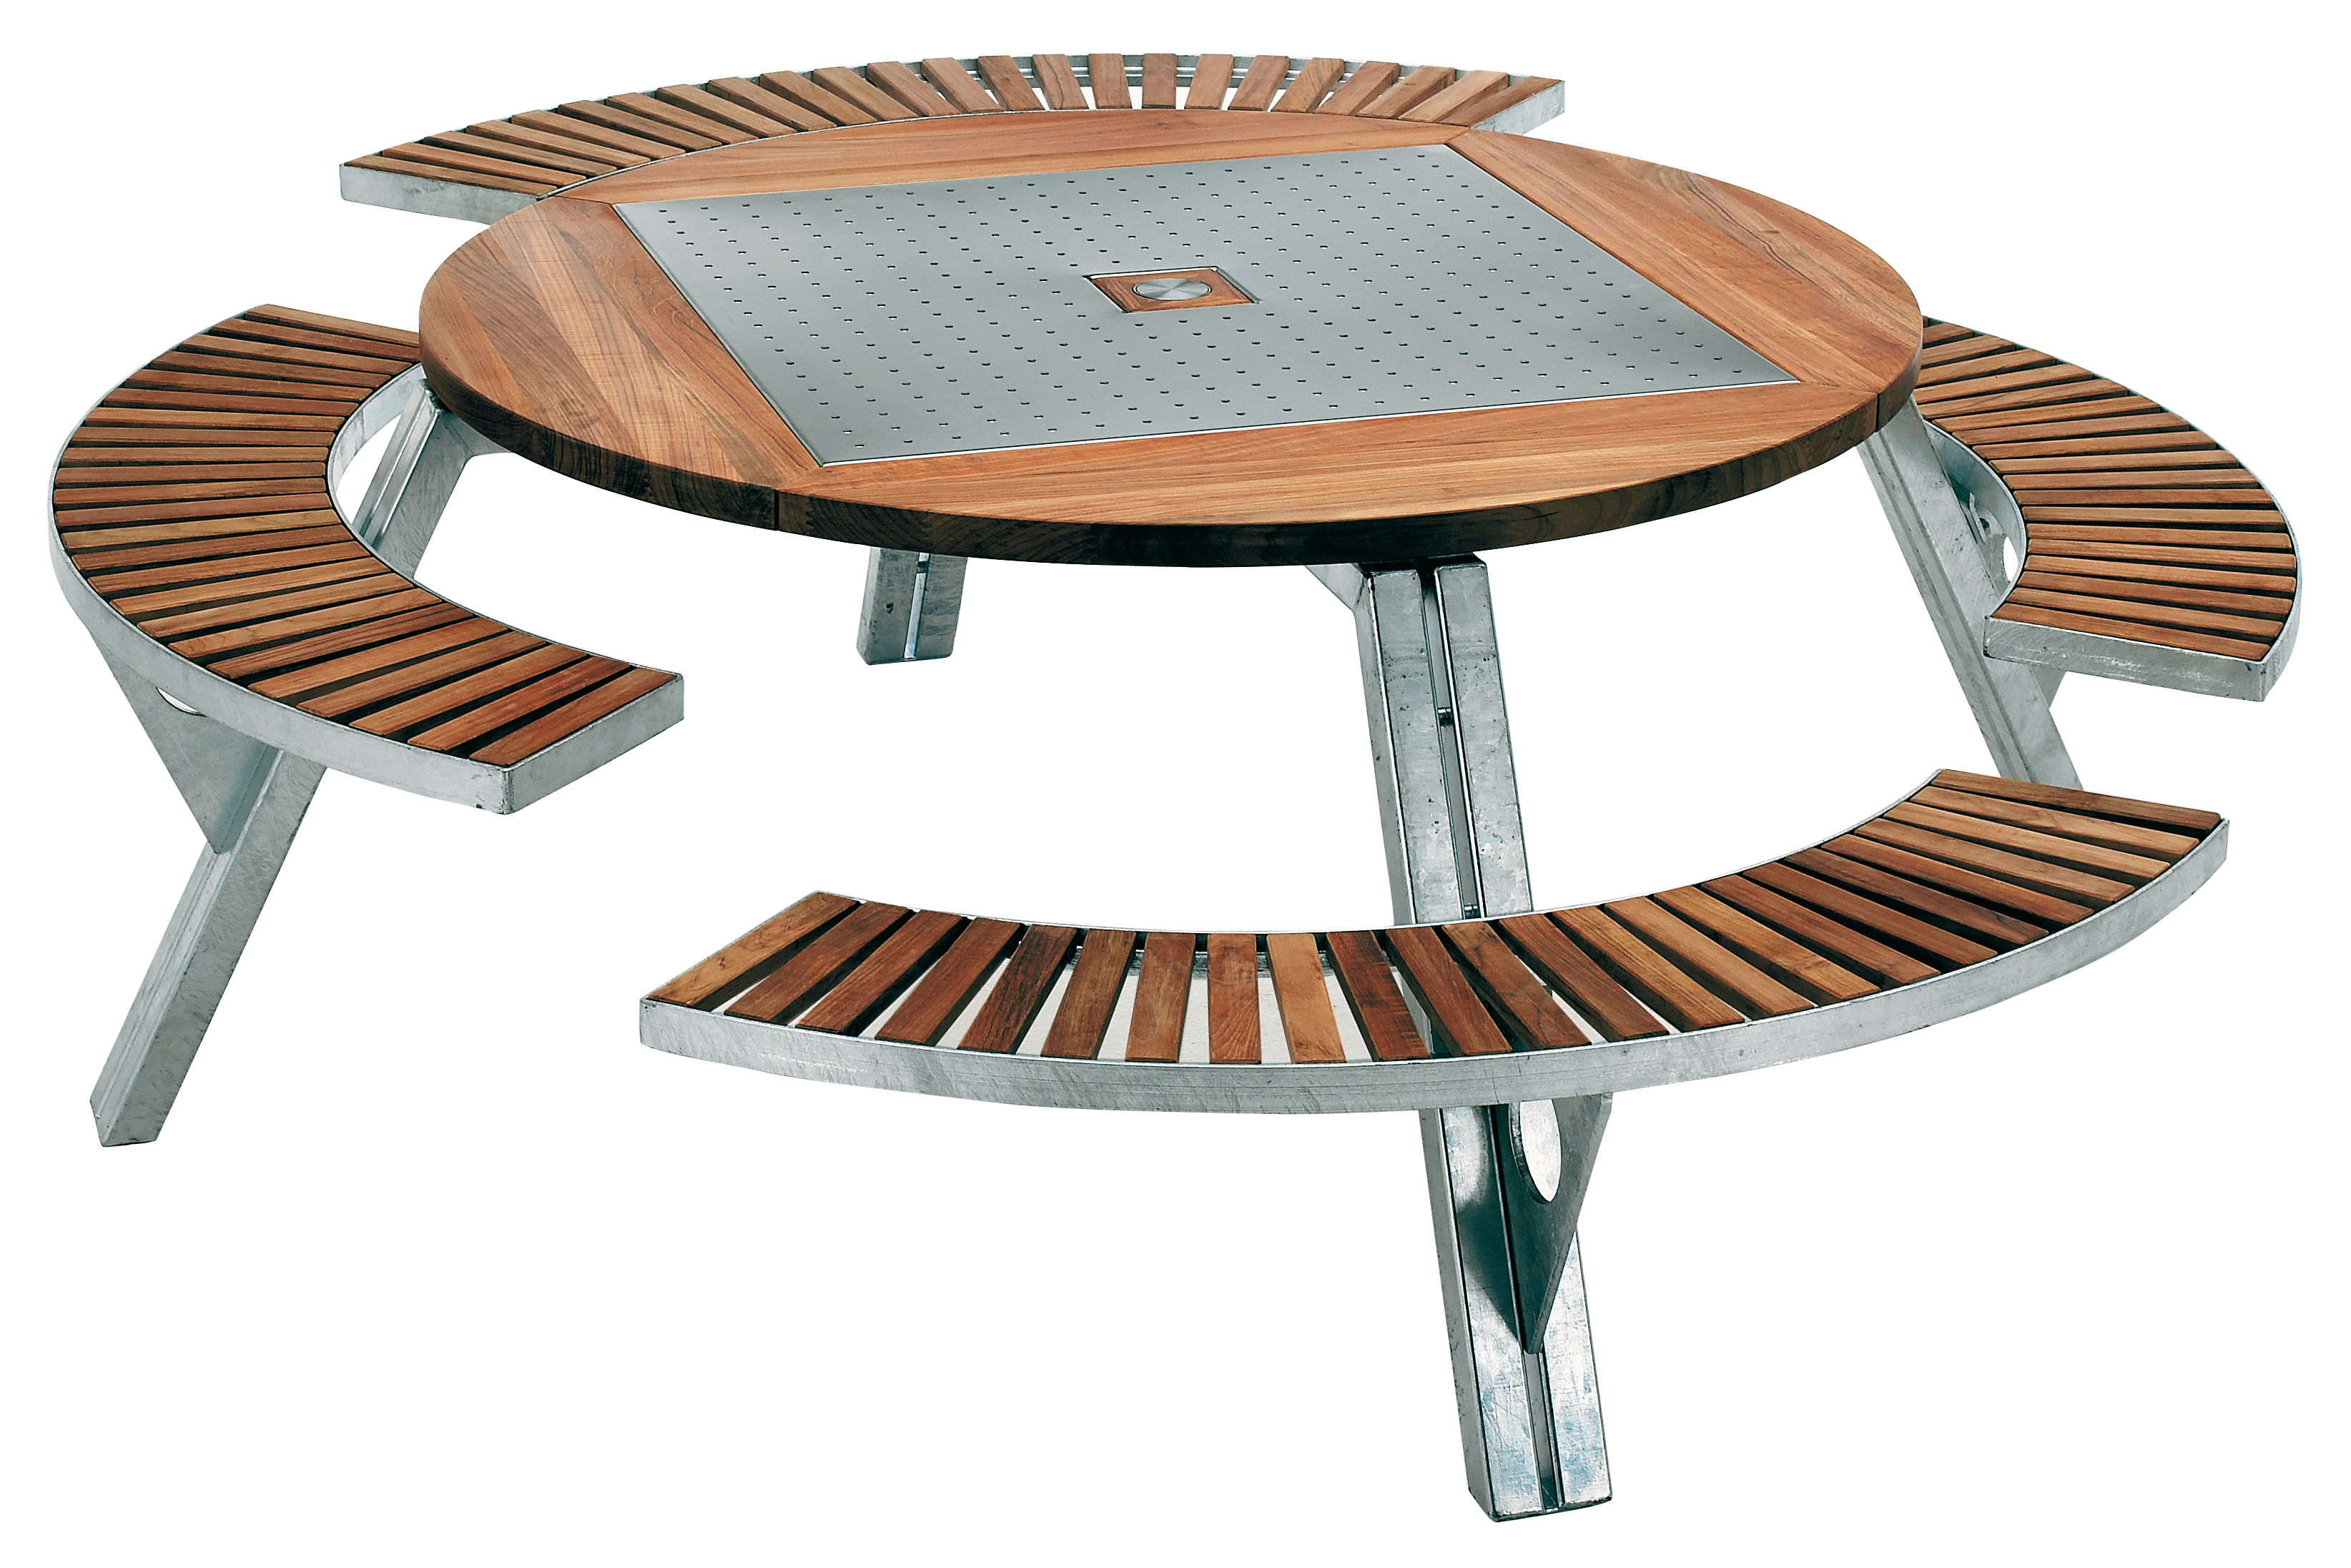 Banc De Jardin Original Gargantua Round Table Adjustable Table And Bench Set By Extremis